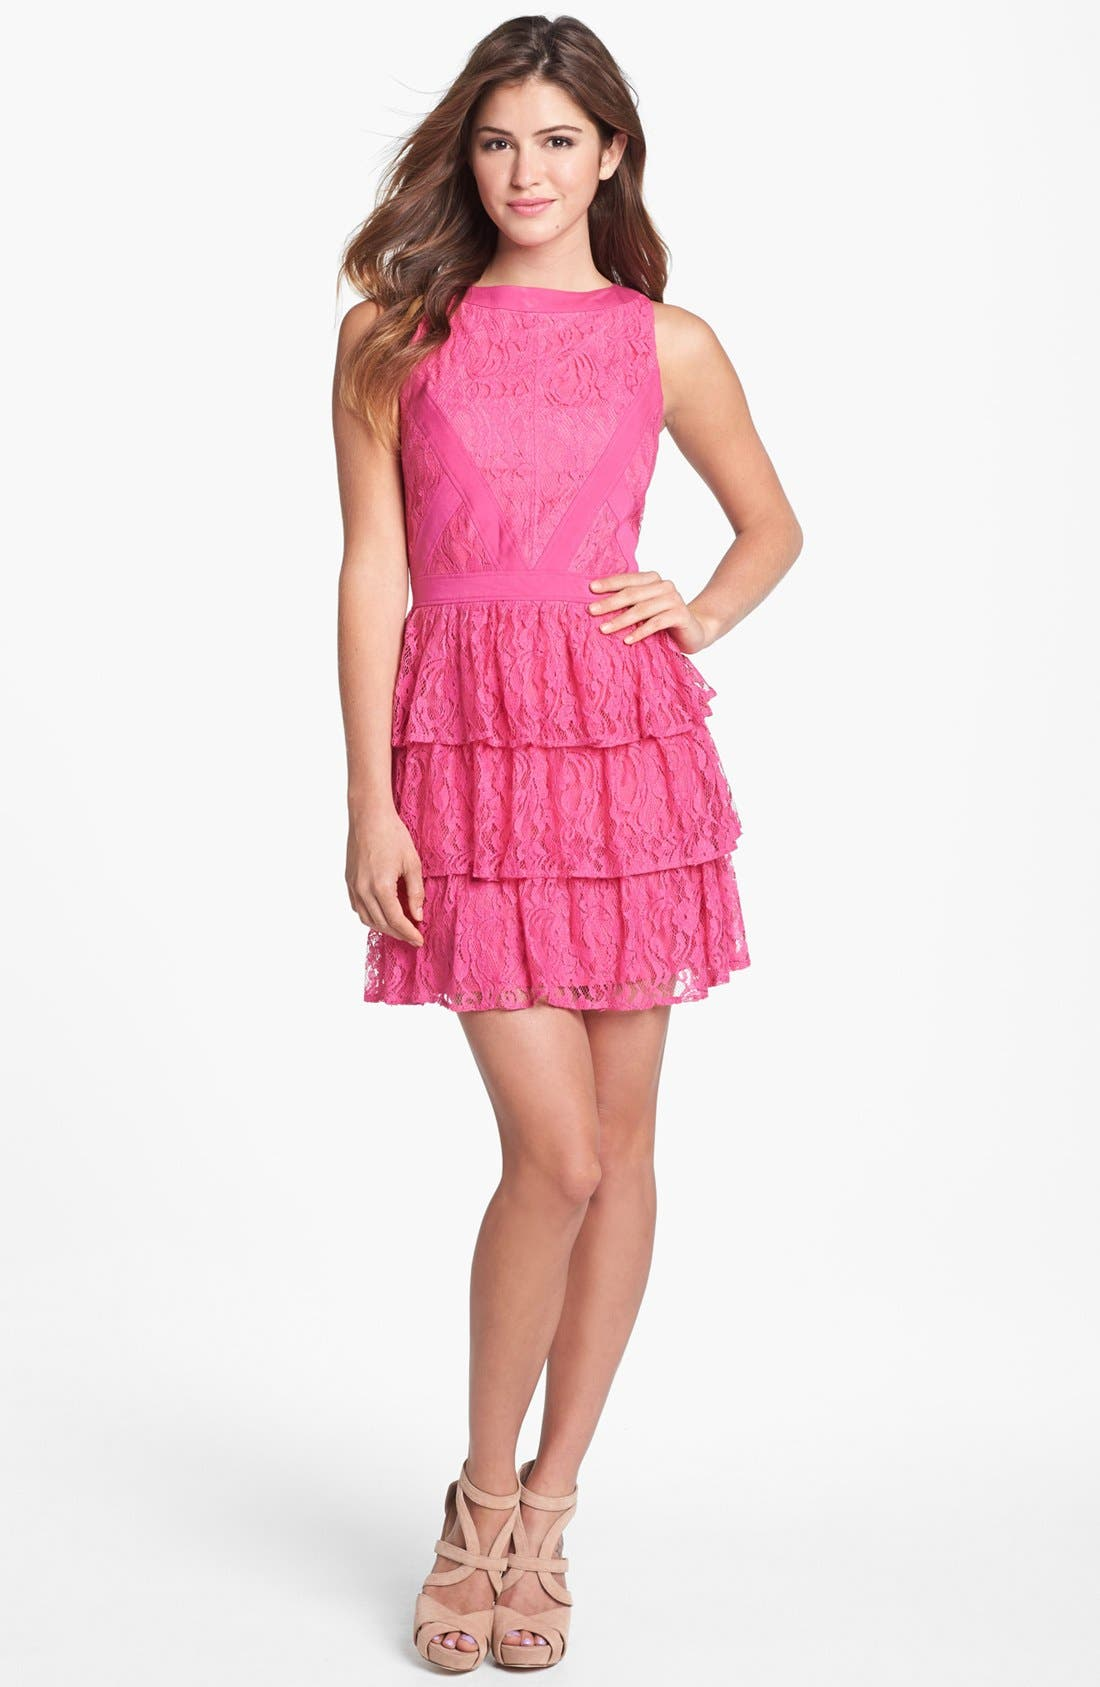 Alternate Image 1 Selected - Keepsake the Label 'Oceans Burning' Tiered Lace Dress